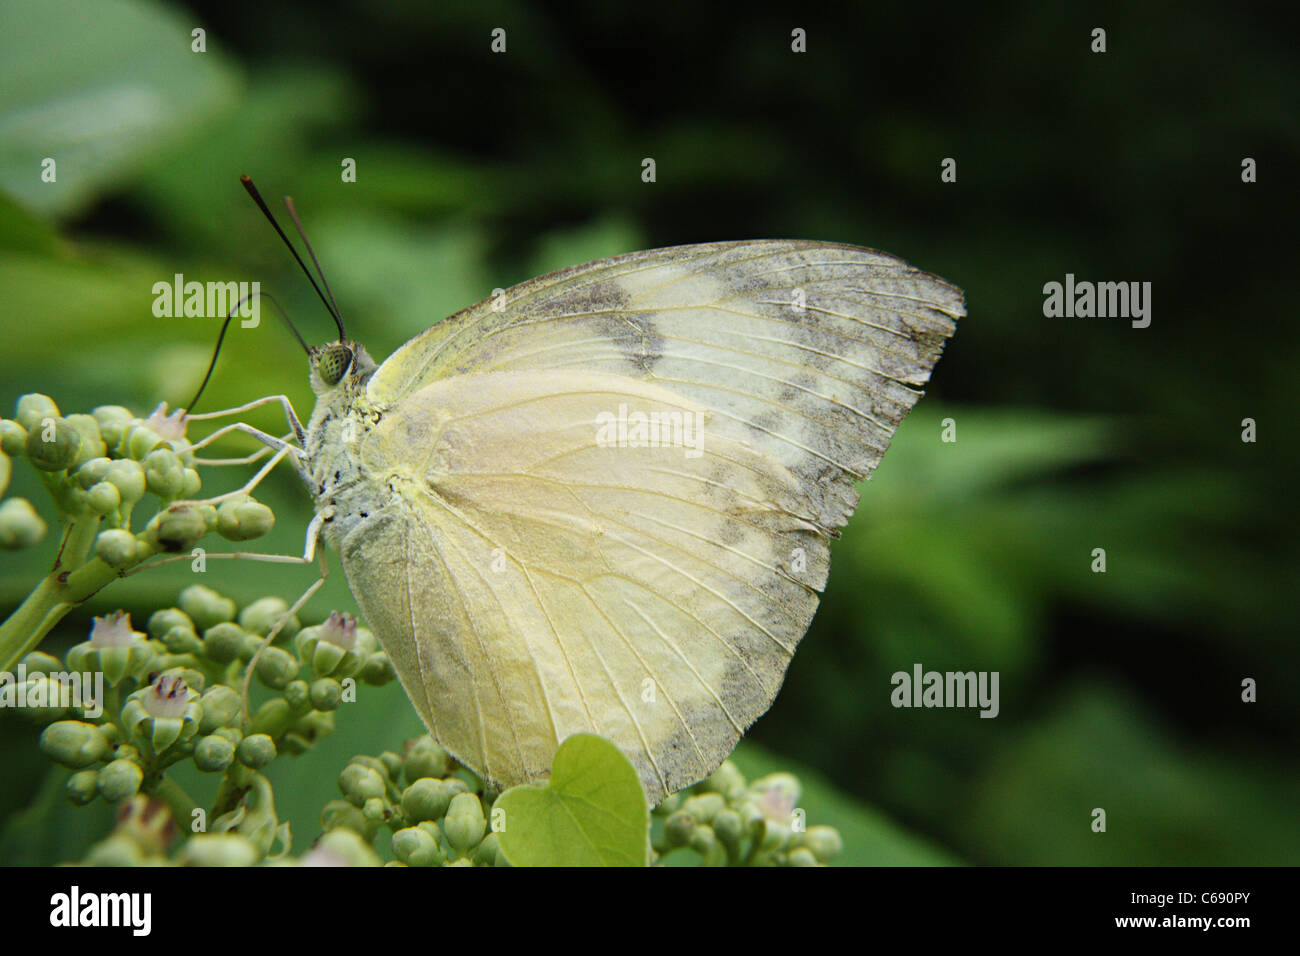 The Green-veined White butterfly (Pieris napi) - Stock Image